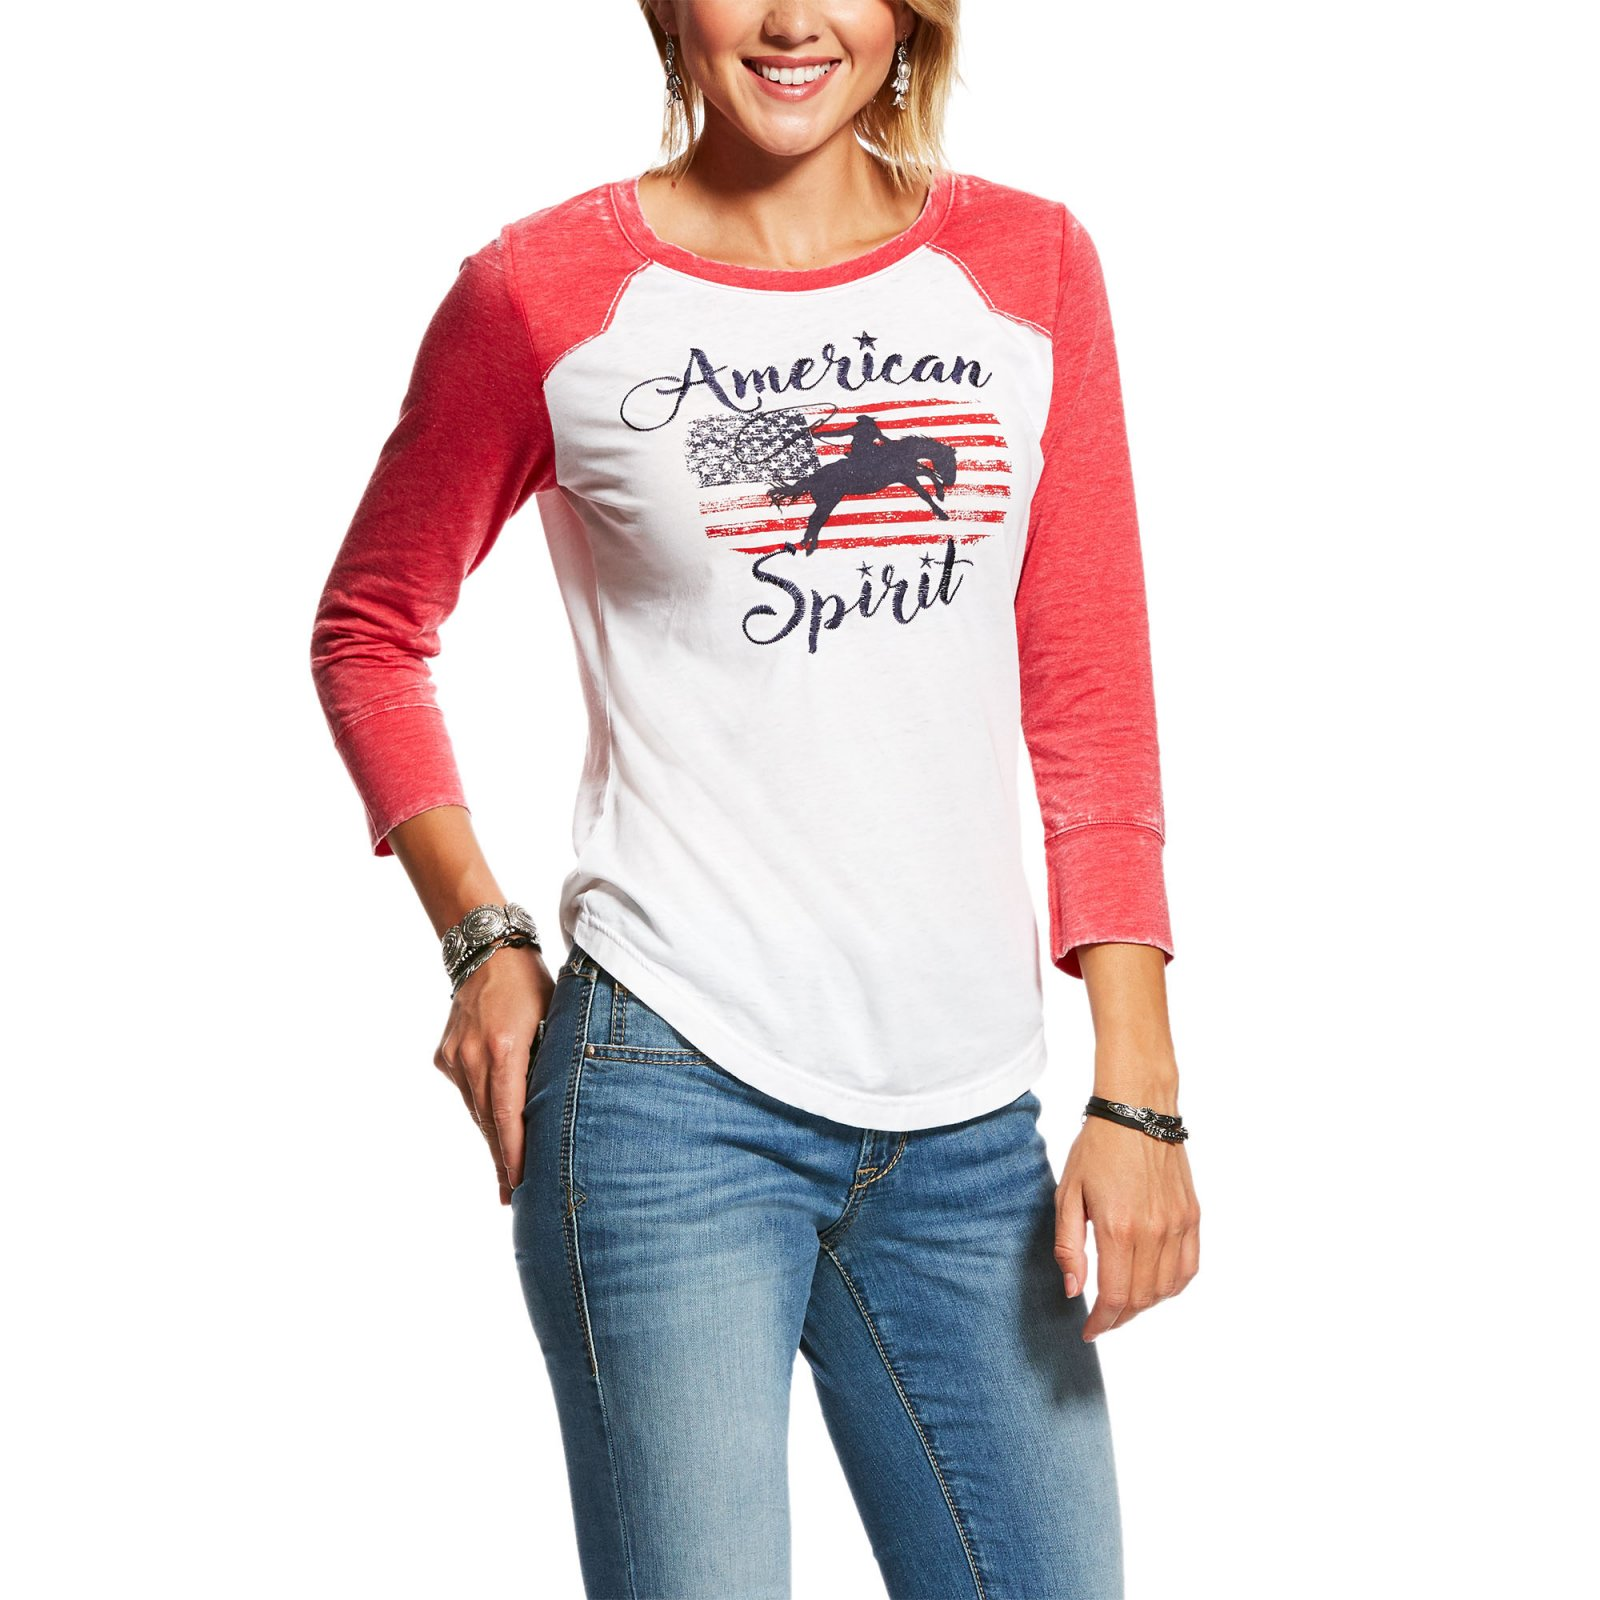 American Spirit Tee from Ariat